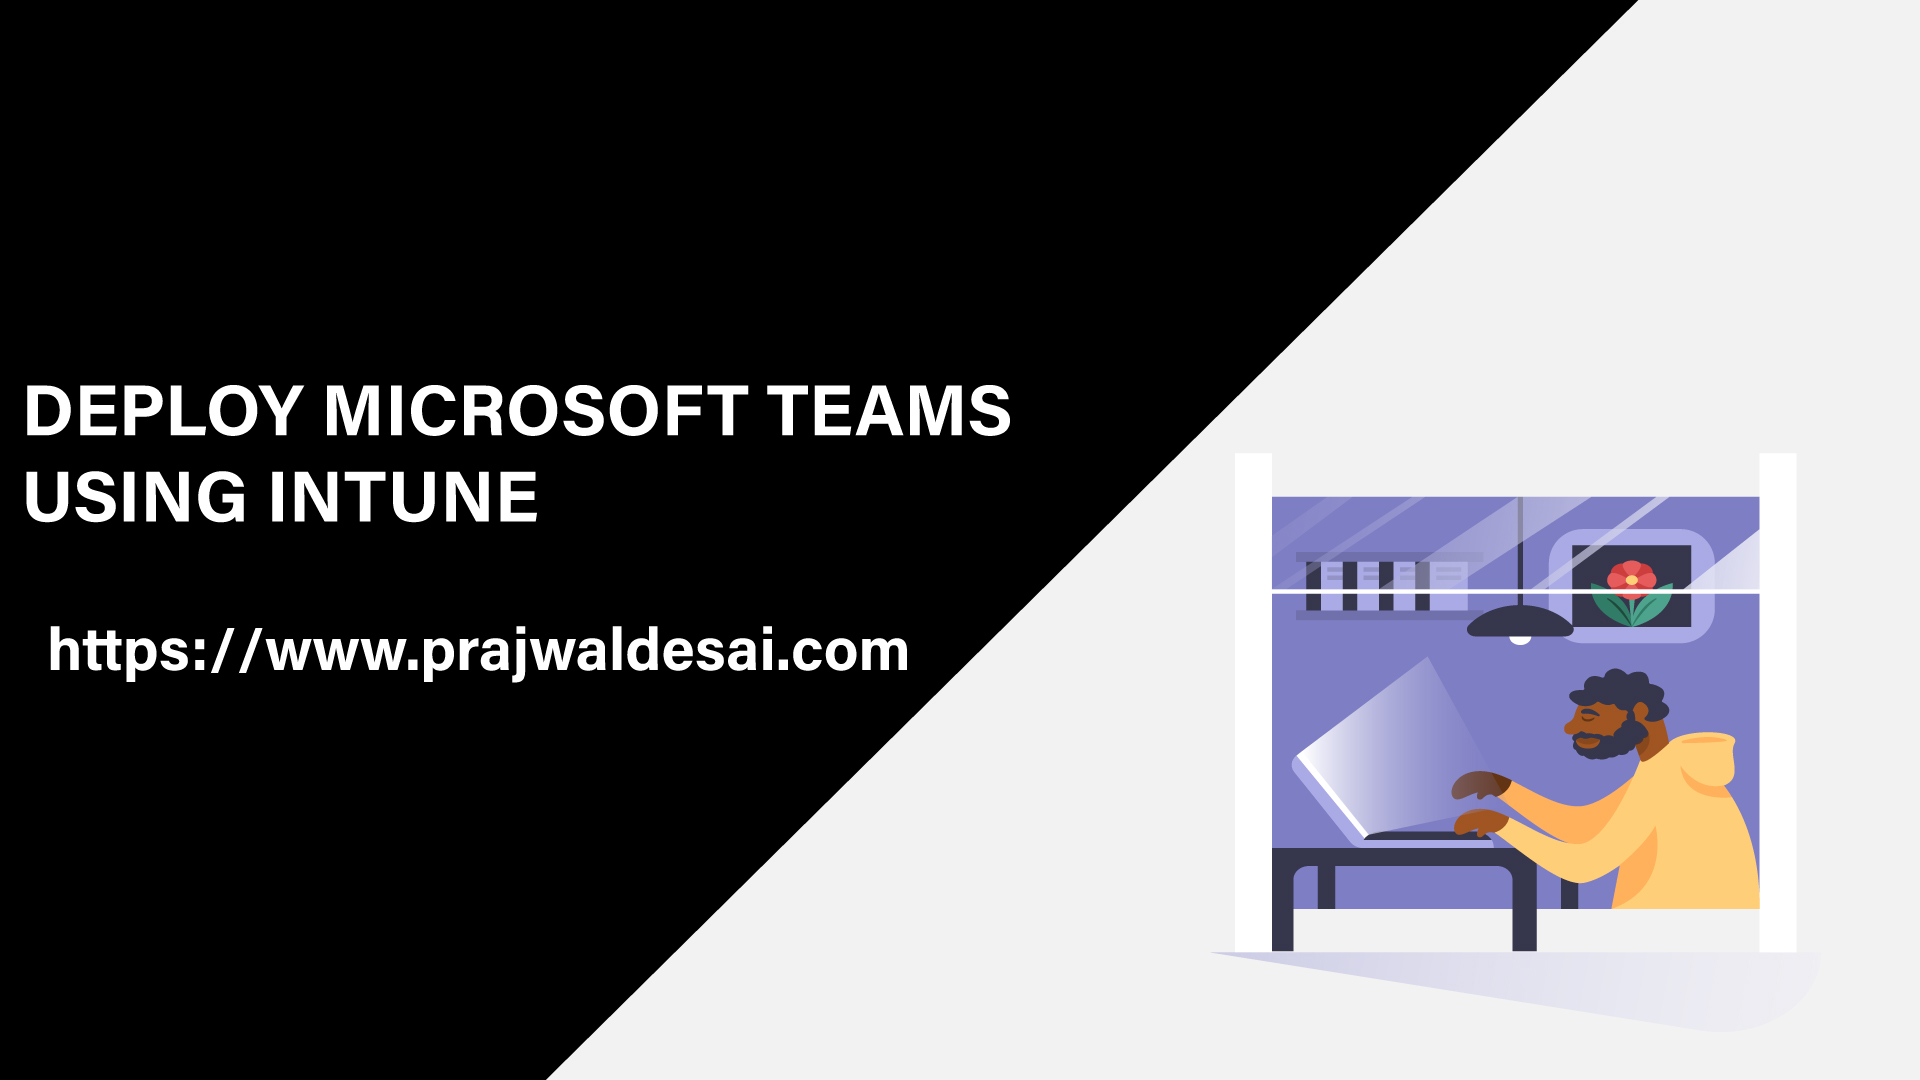 Deploy Microsoft Teams Using Intune